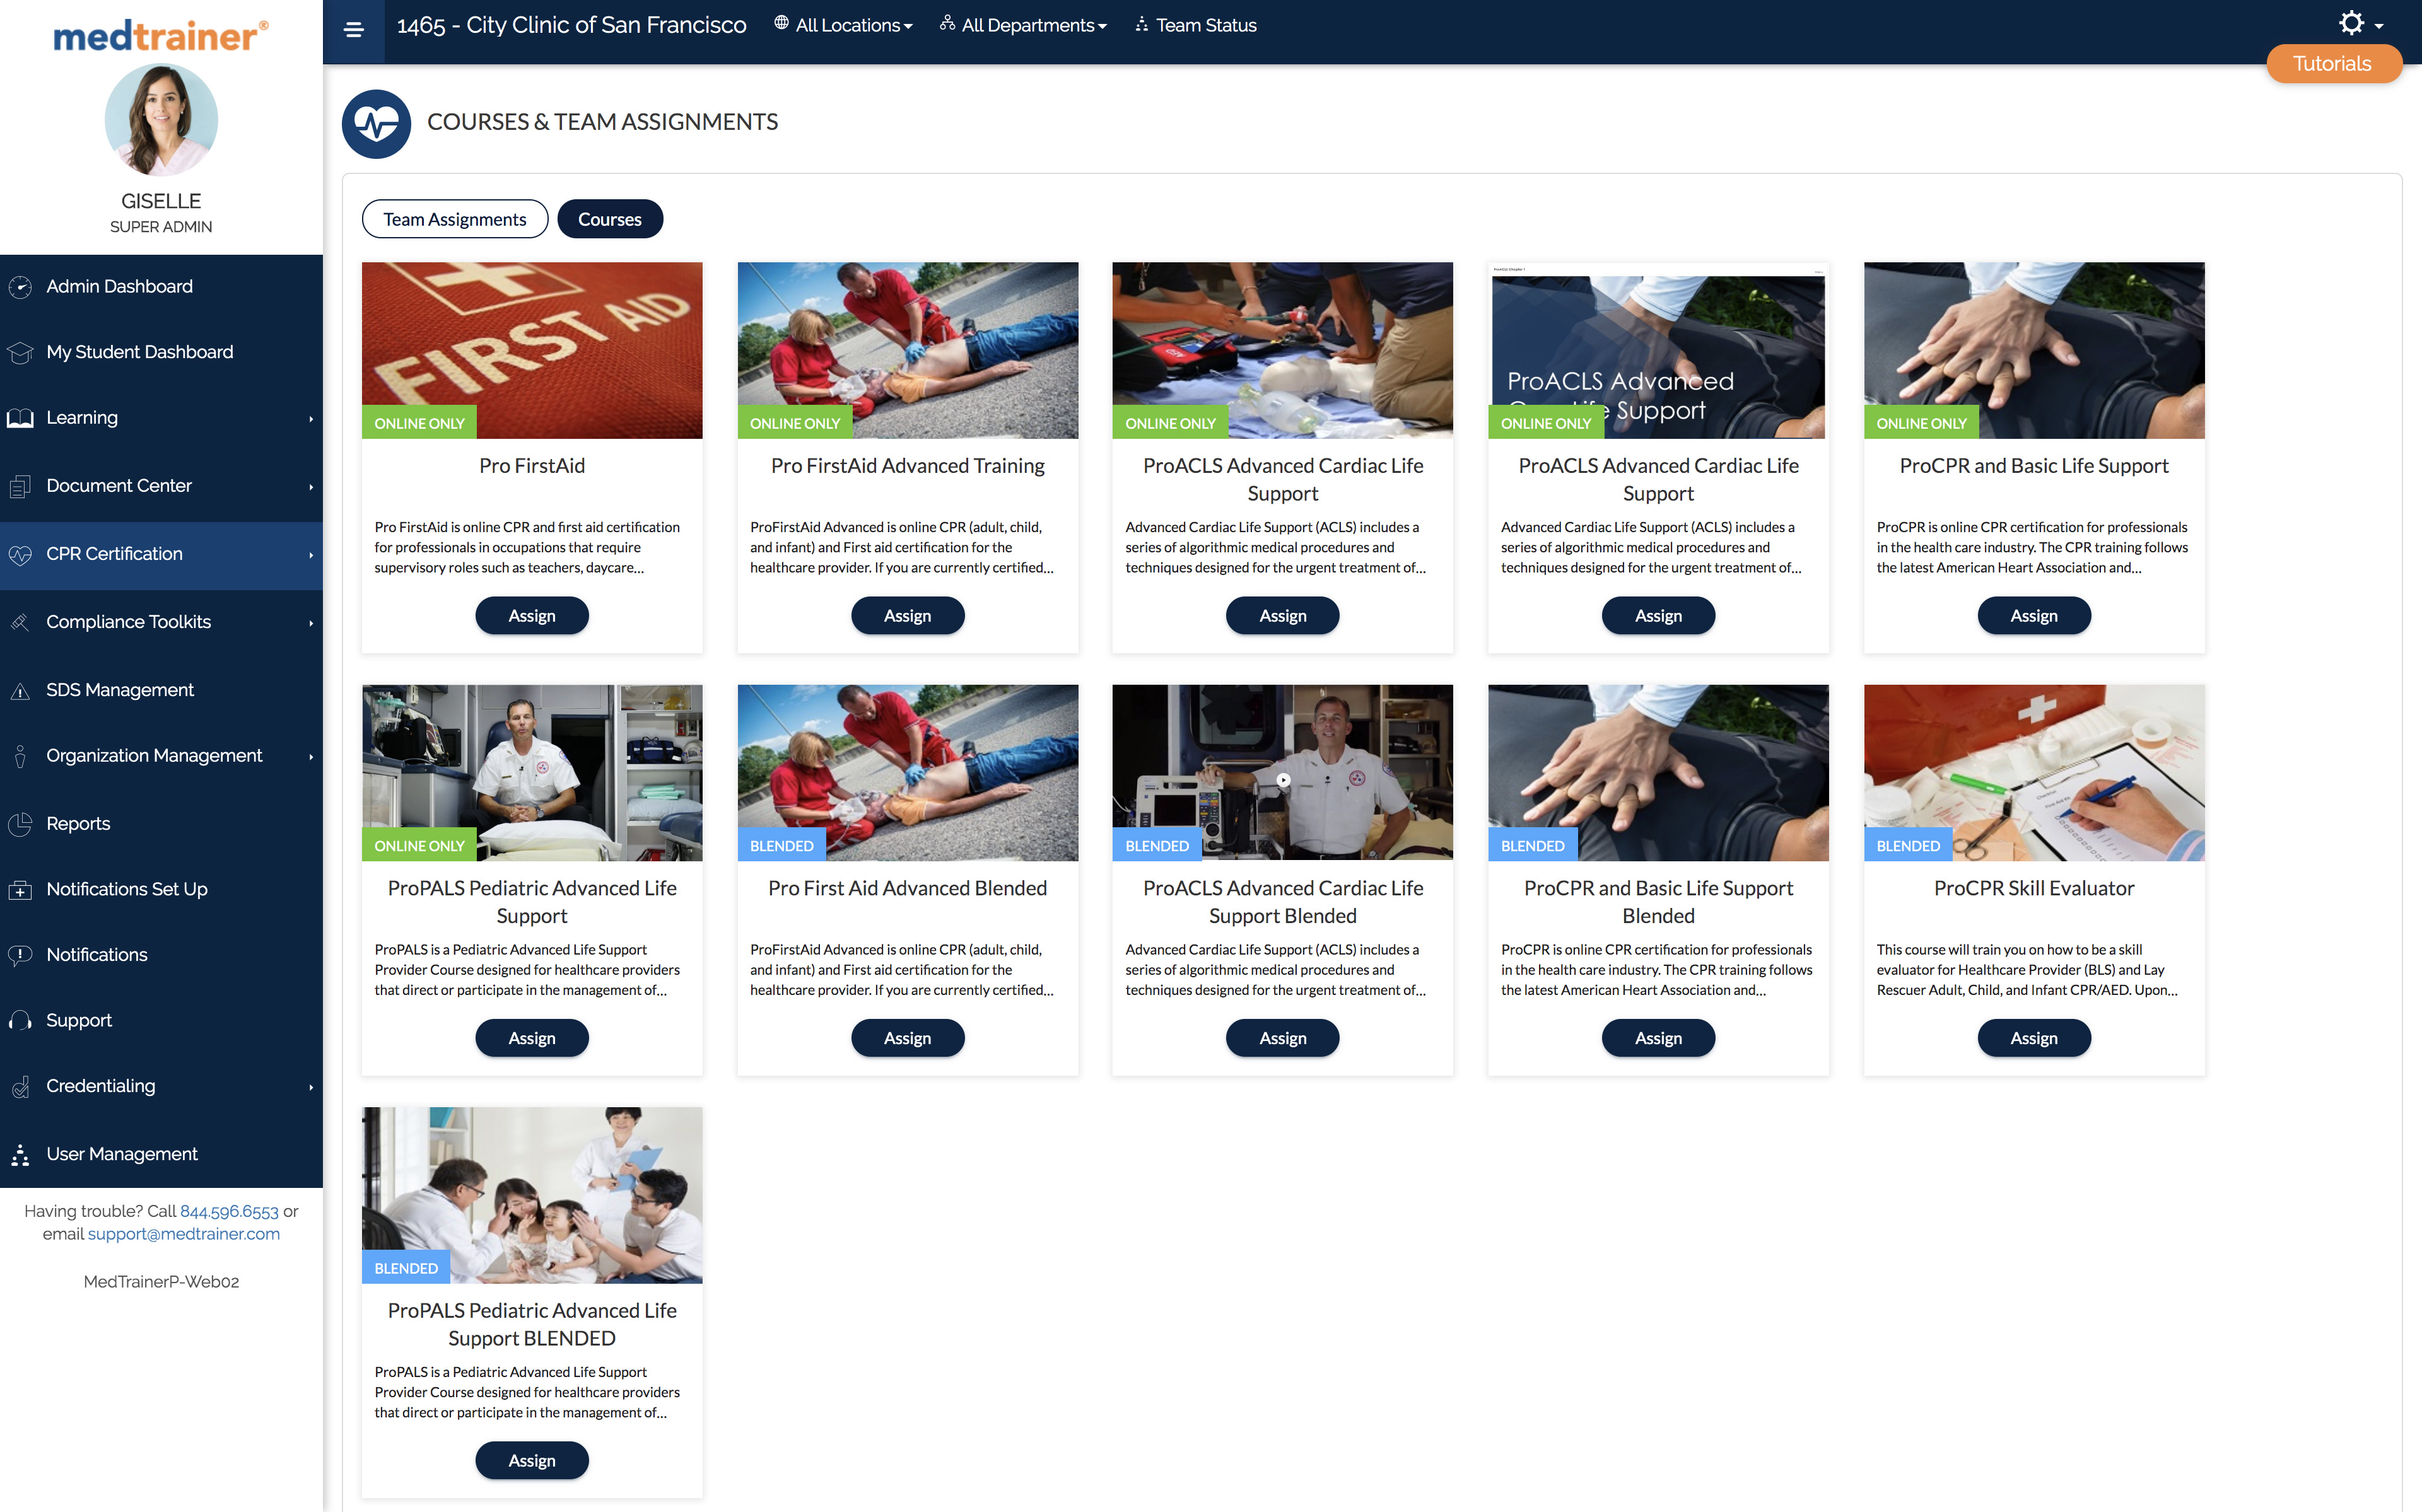 Medtrainer course catalog